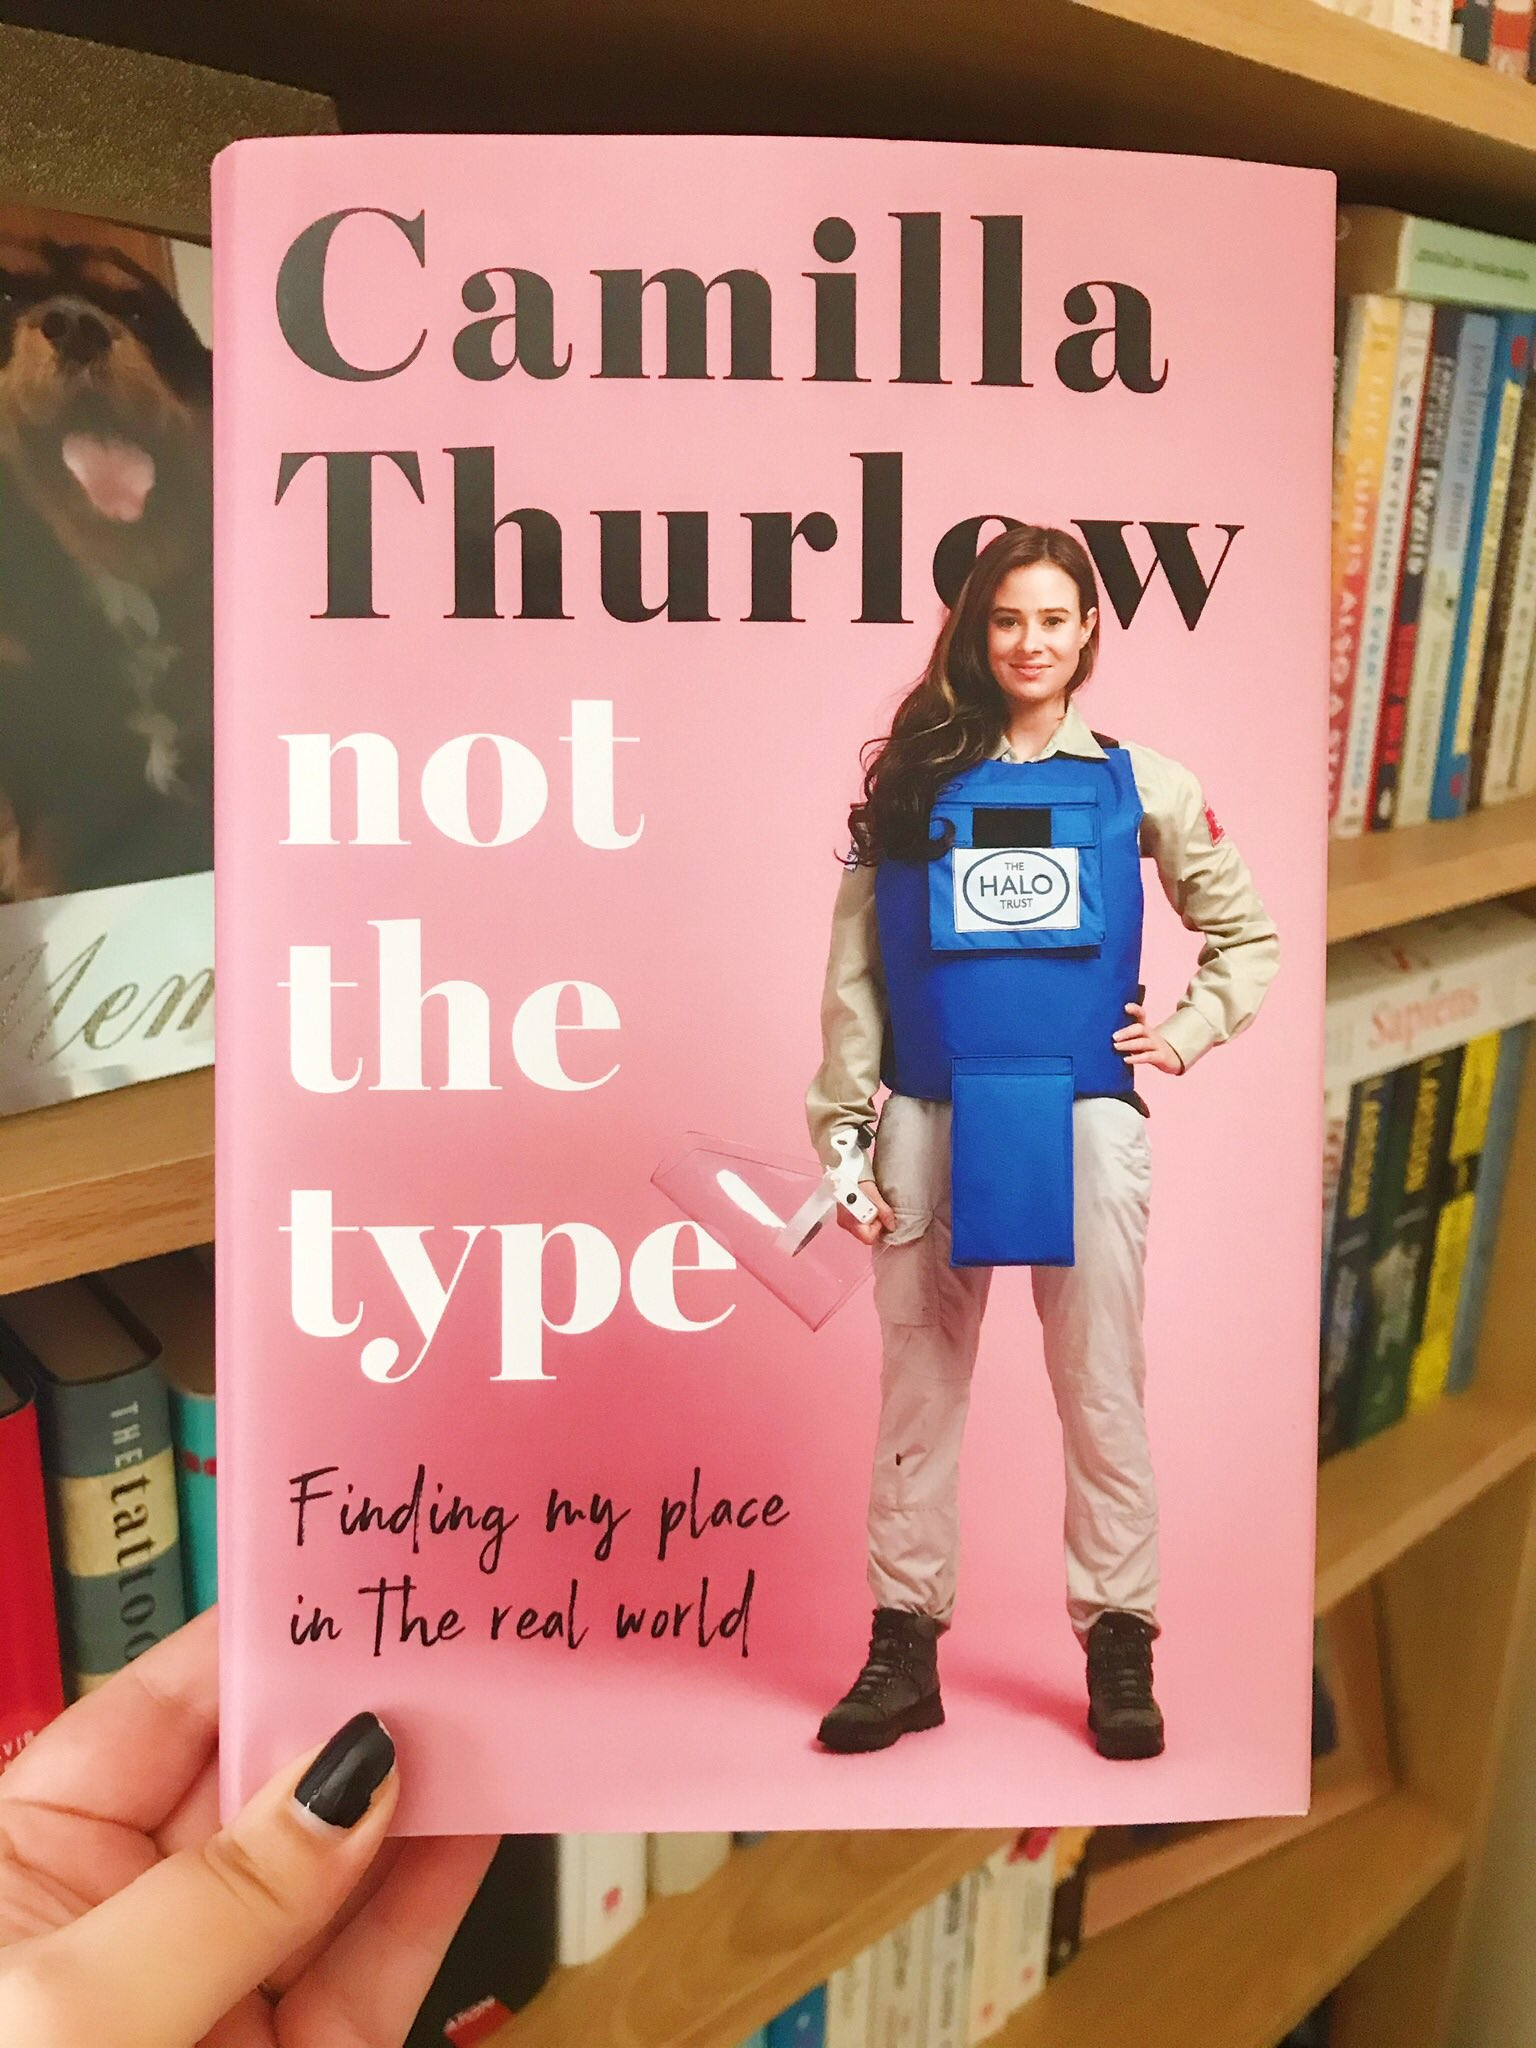 Not The Type by Camilla Thurlow held up in front of bookshelf